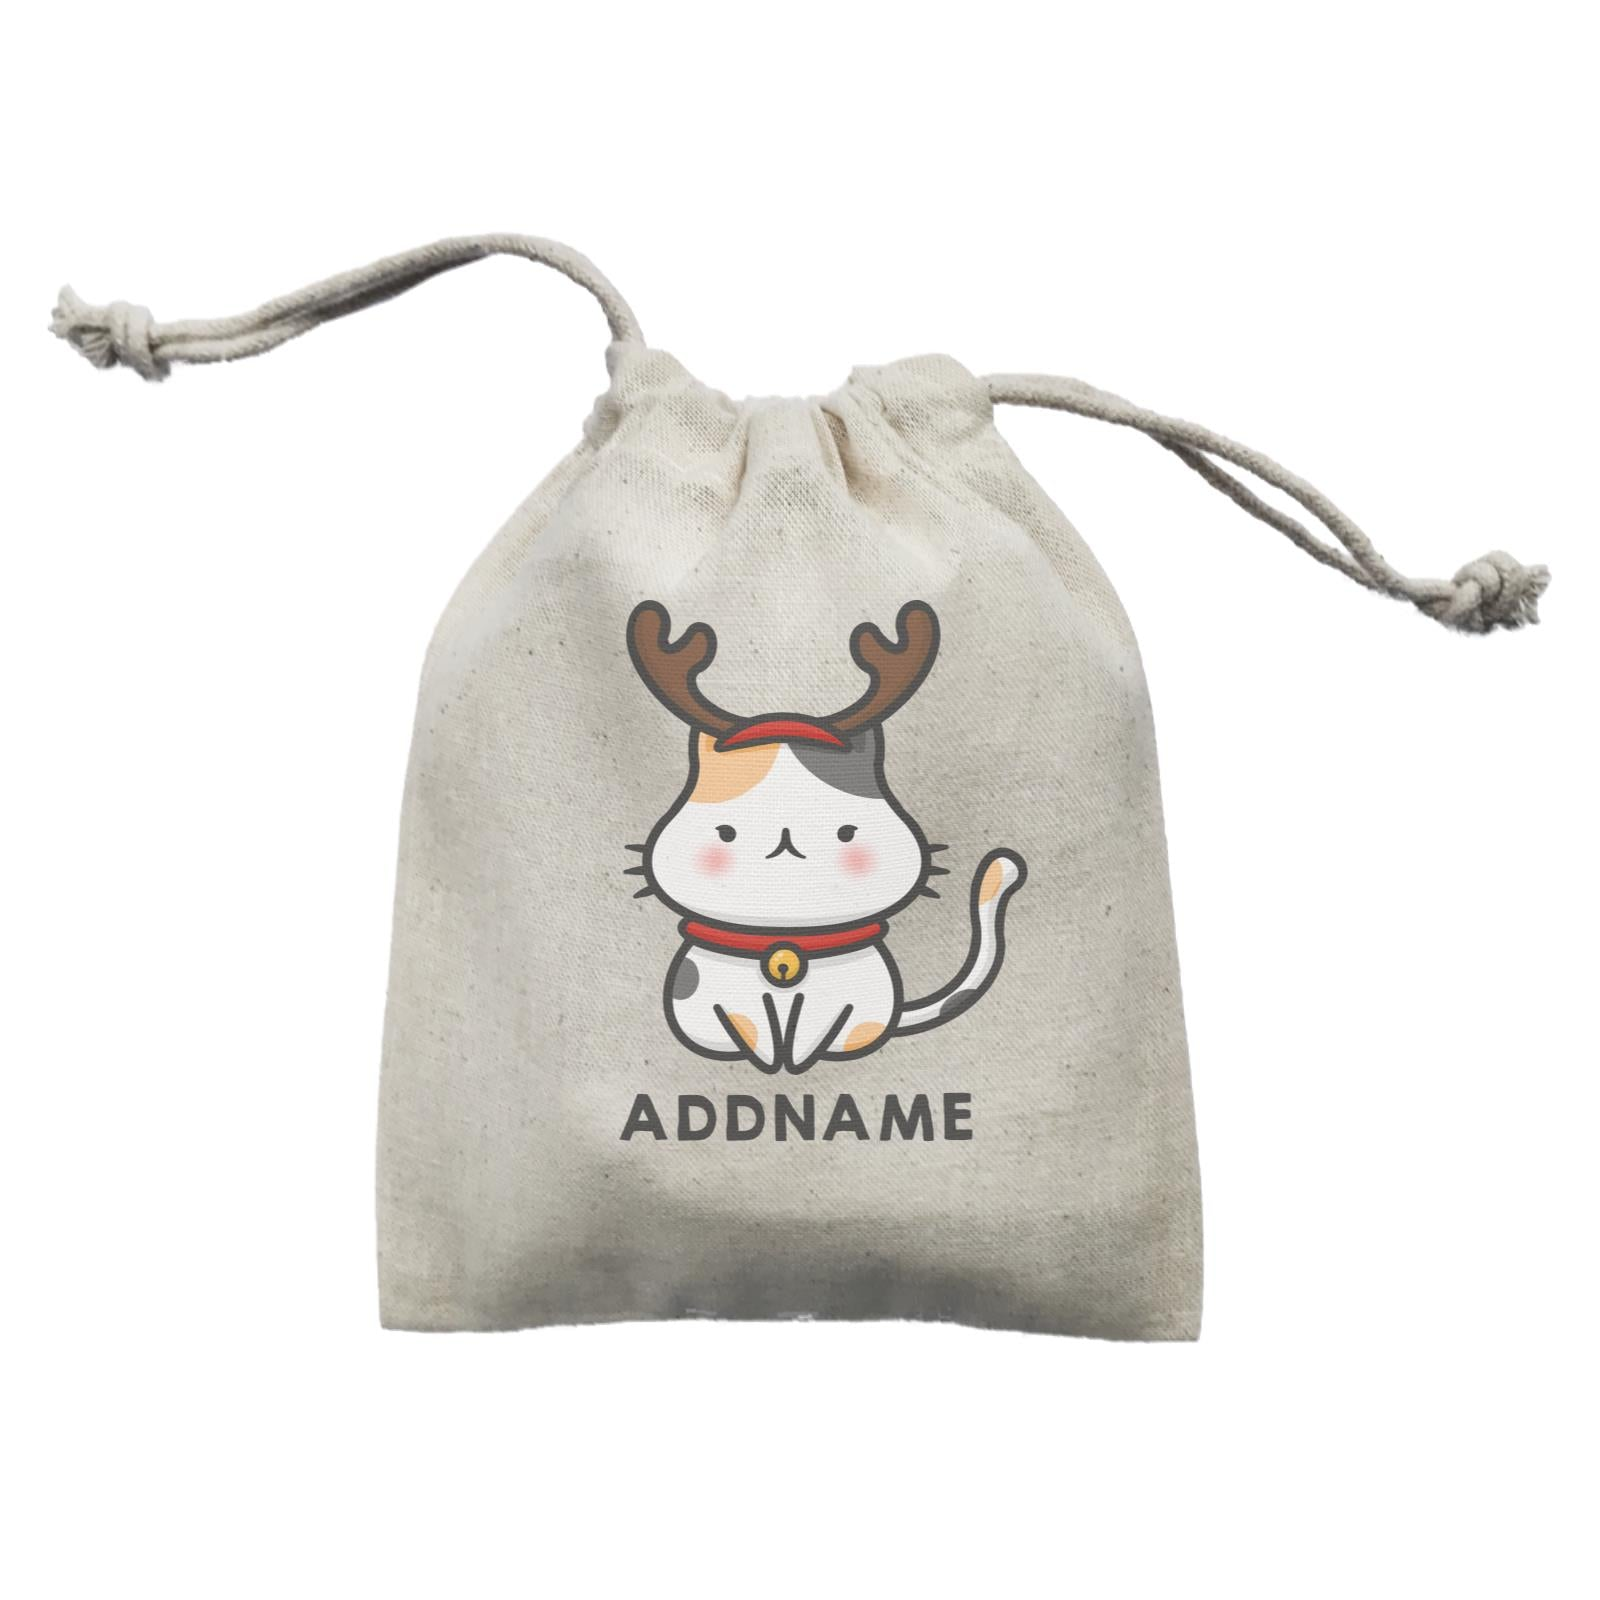 Xmas Cute Cat With Reindeer Antlers Addname Mini Accessories Mini Pouch